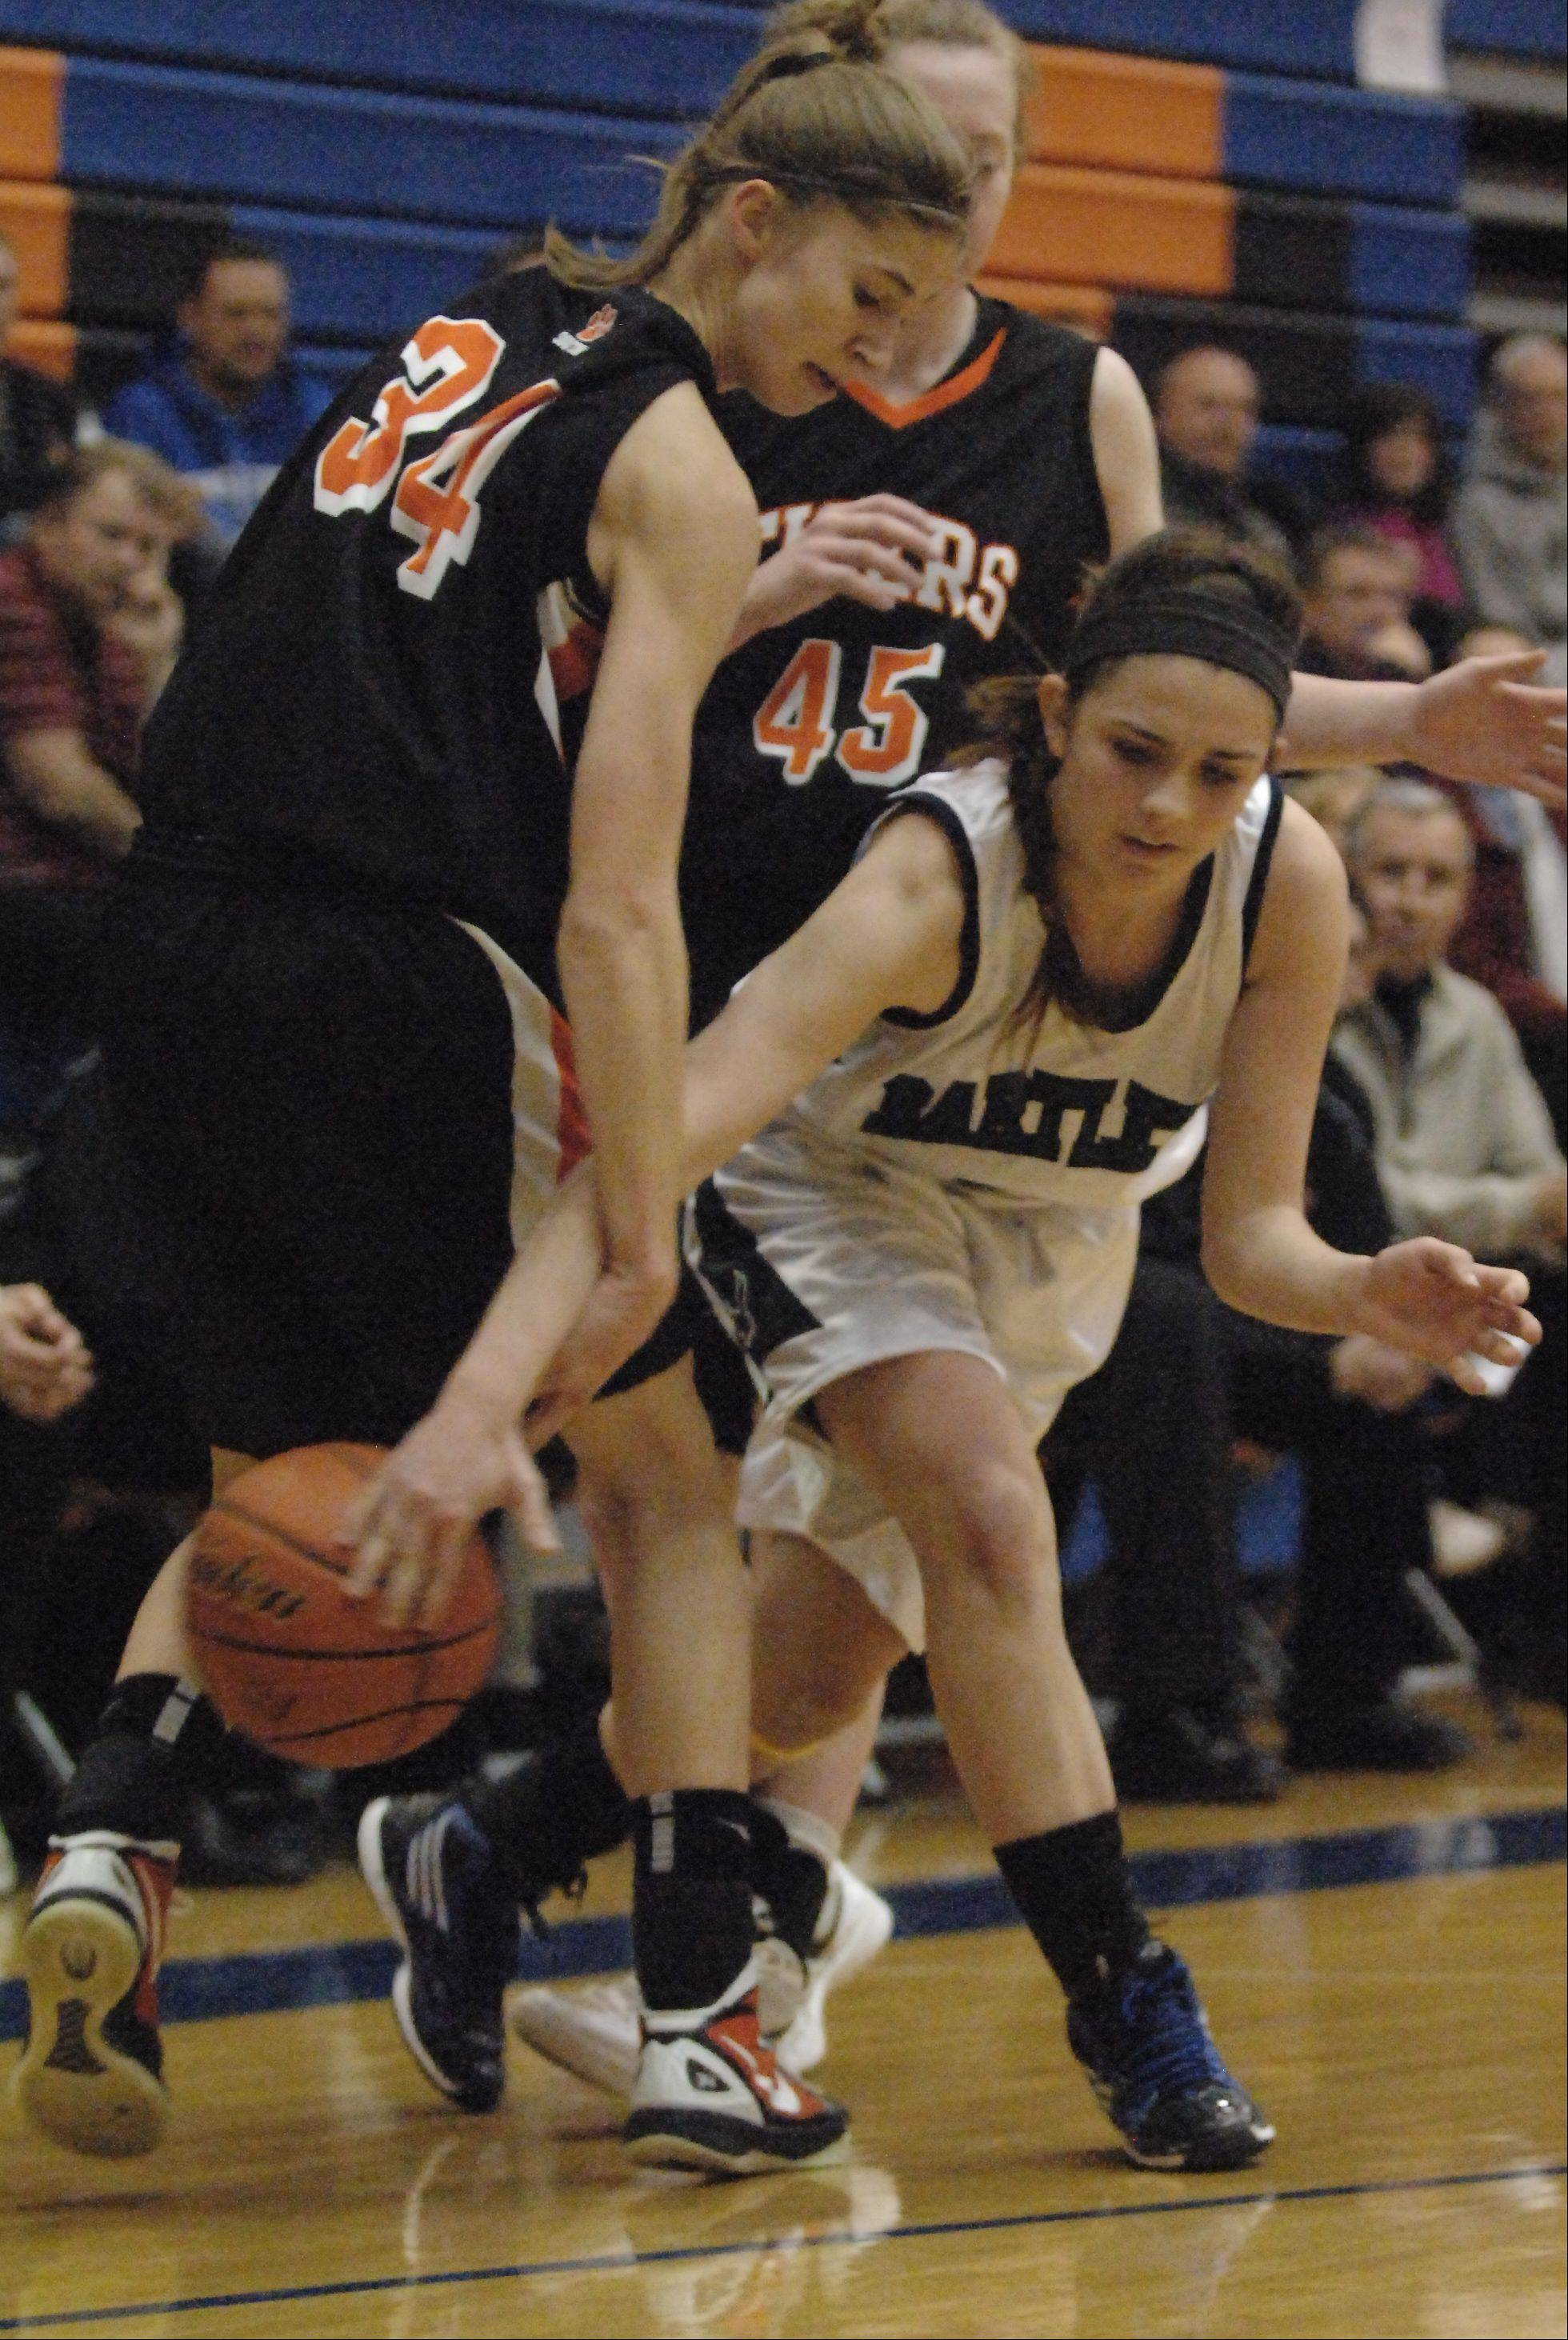 Images from the Bartlett vs. Wheaton Warrenville South girls sectional basketball game Thursday, February 23, 2012.